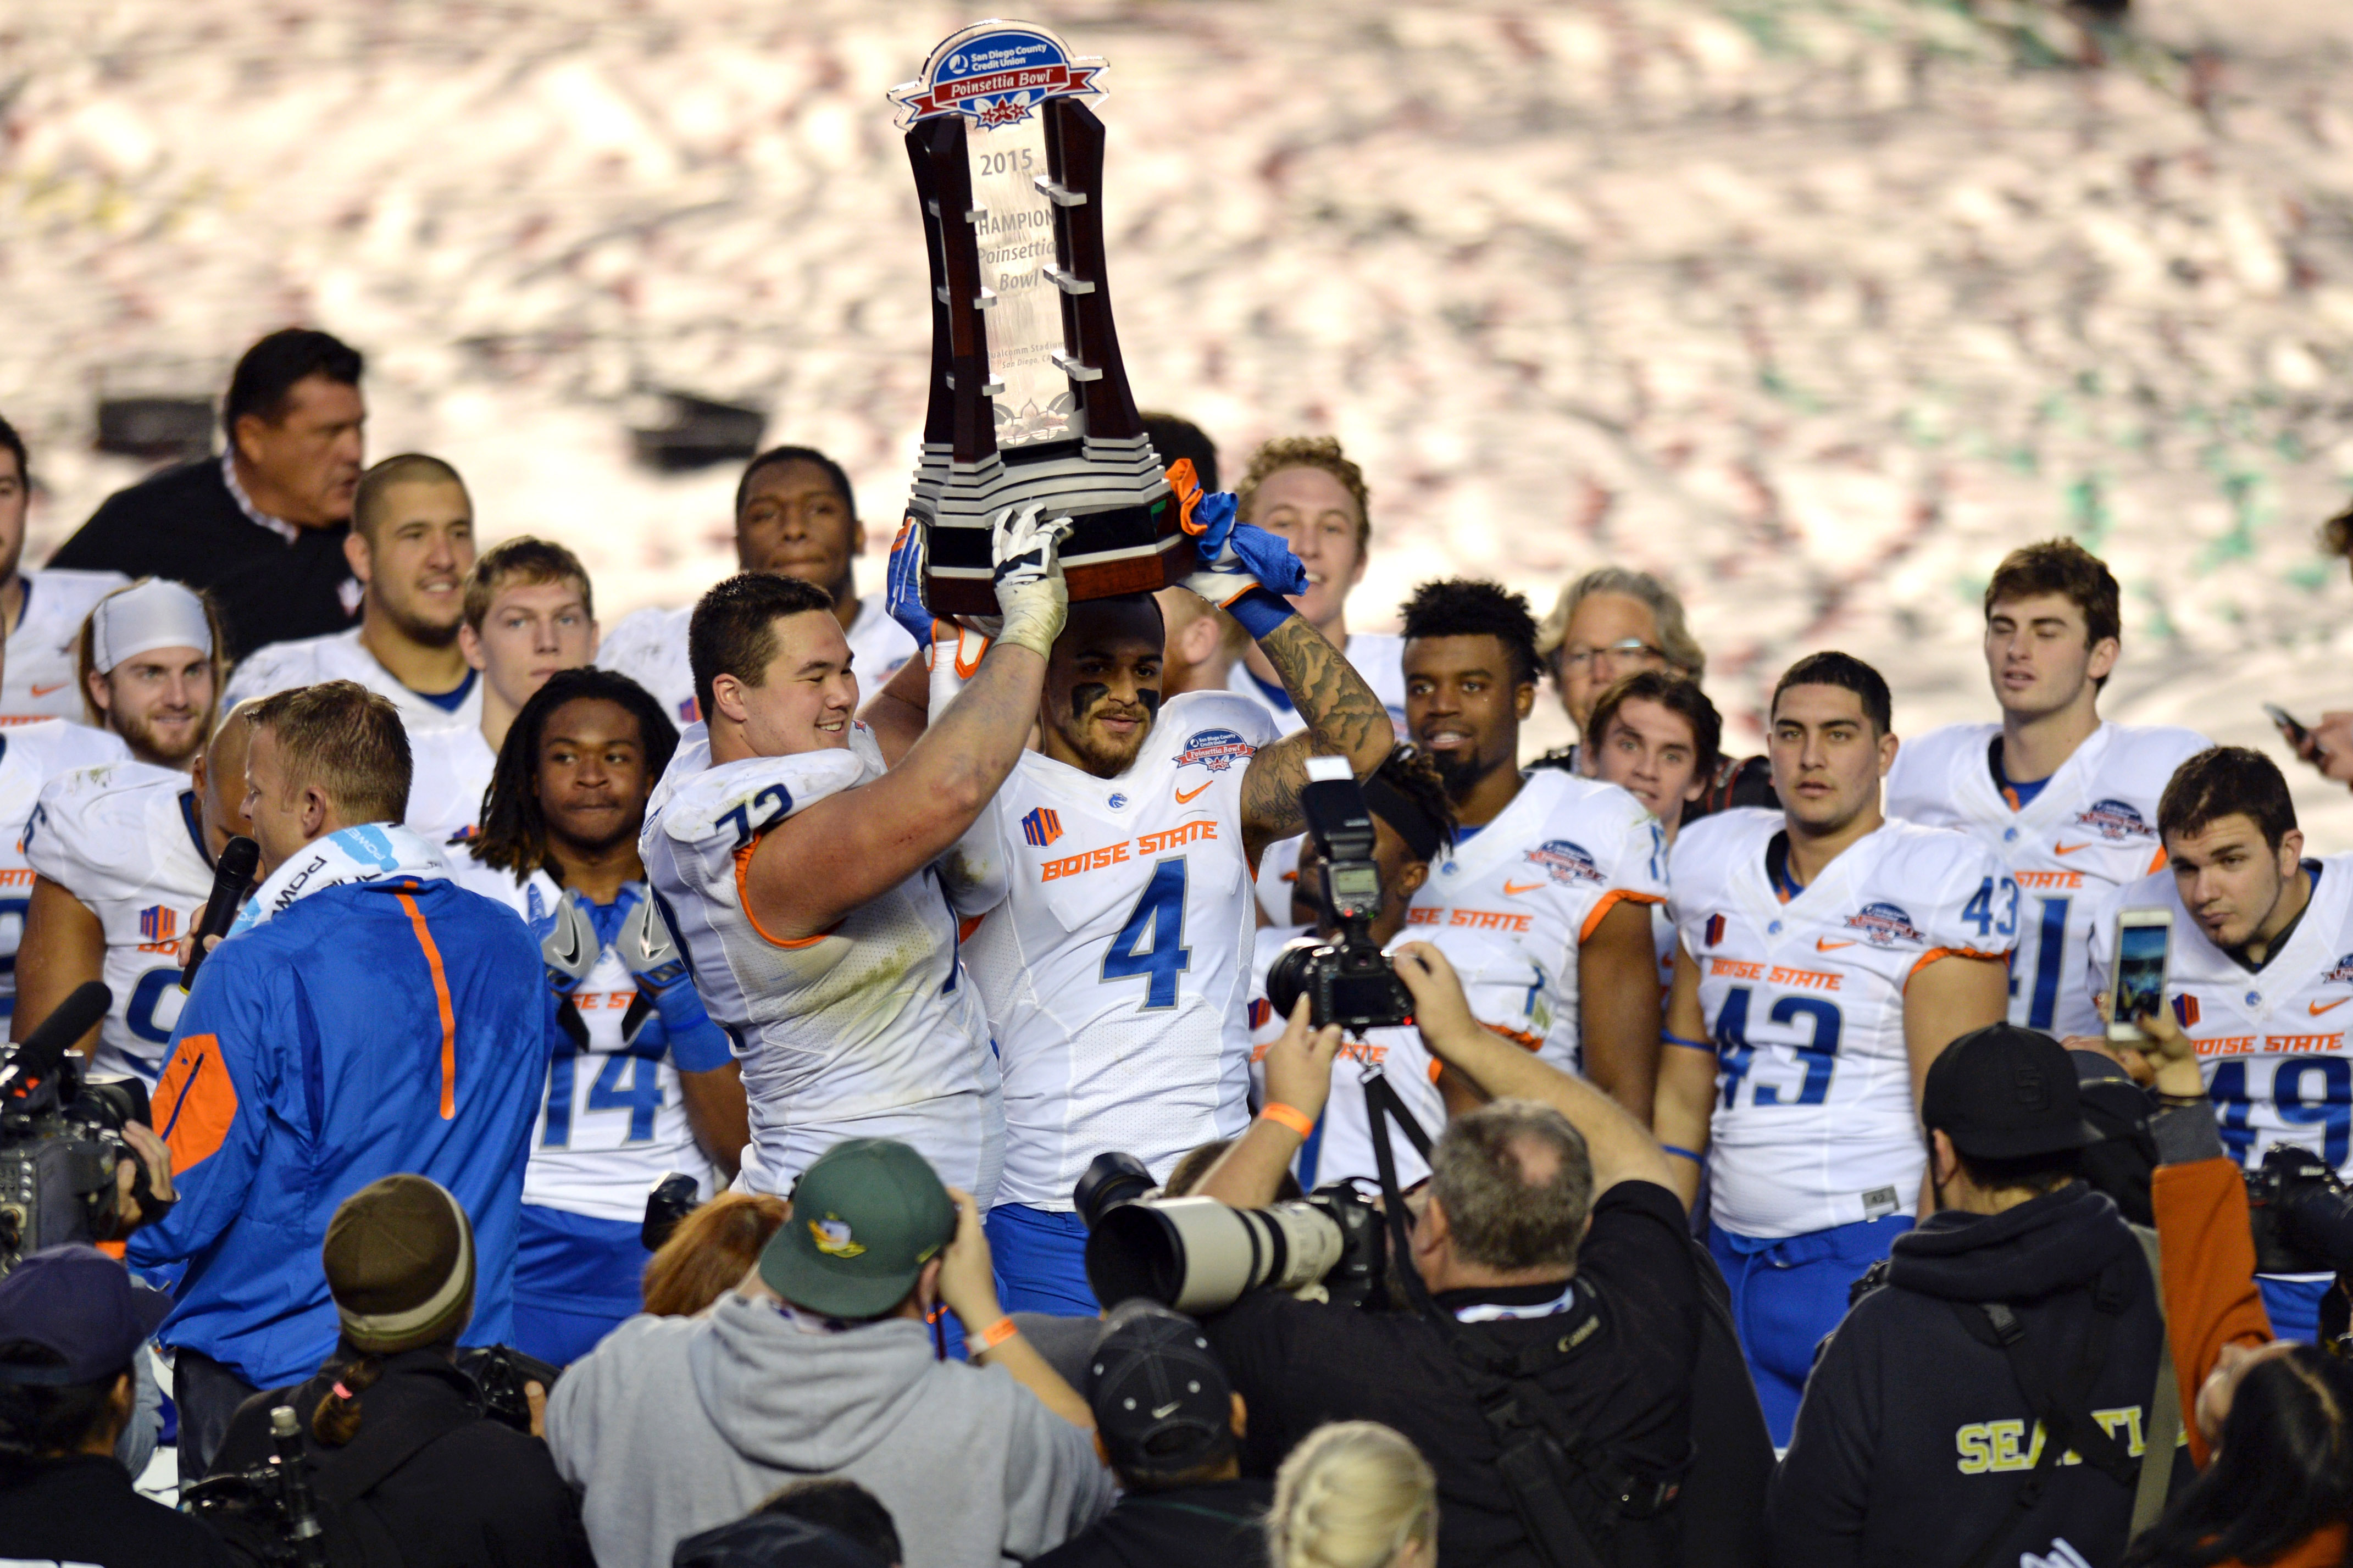 Dec 23, 2015; San Diego, CA, USA; Team captains Boise State Broncos offensive lineman Marcus Henry (72) and safety Darian Thompson (4) hold up the 2015 Poinsettia Bowl Trophy after beating Northern Illinois Huskies 55-7 at Qualcomm Stadium. Mandatory Credit: Jake Roth-USA TODAY Sports